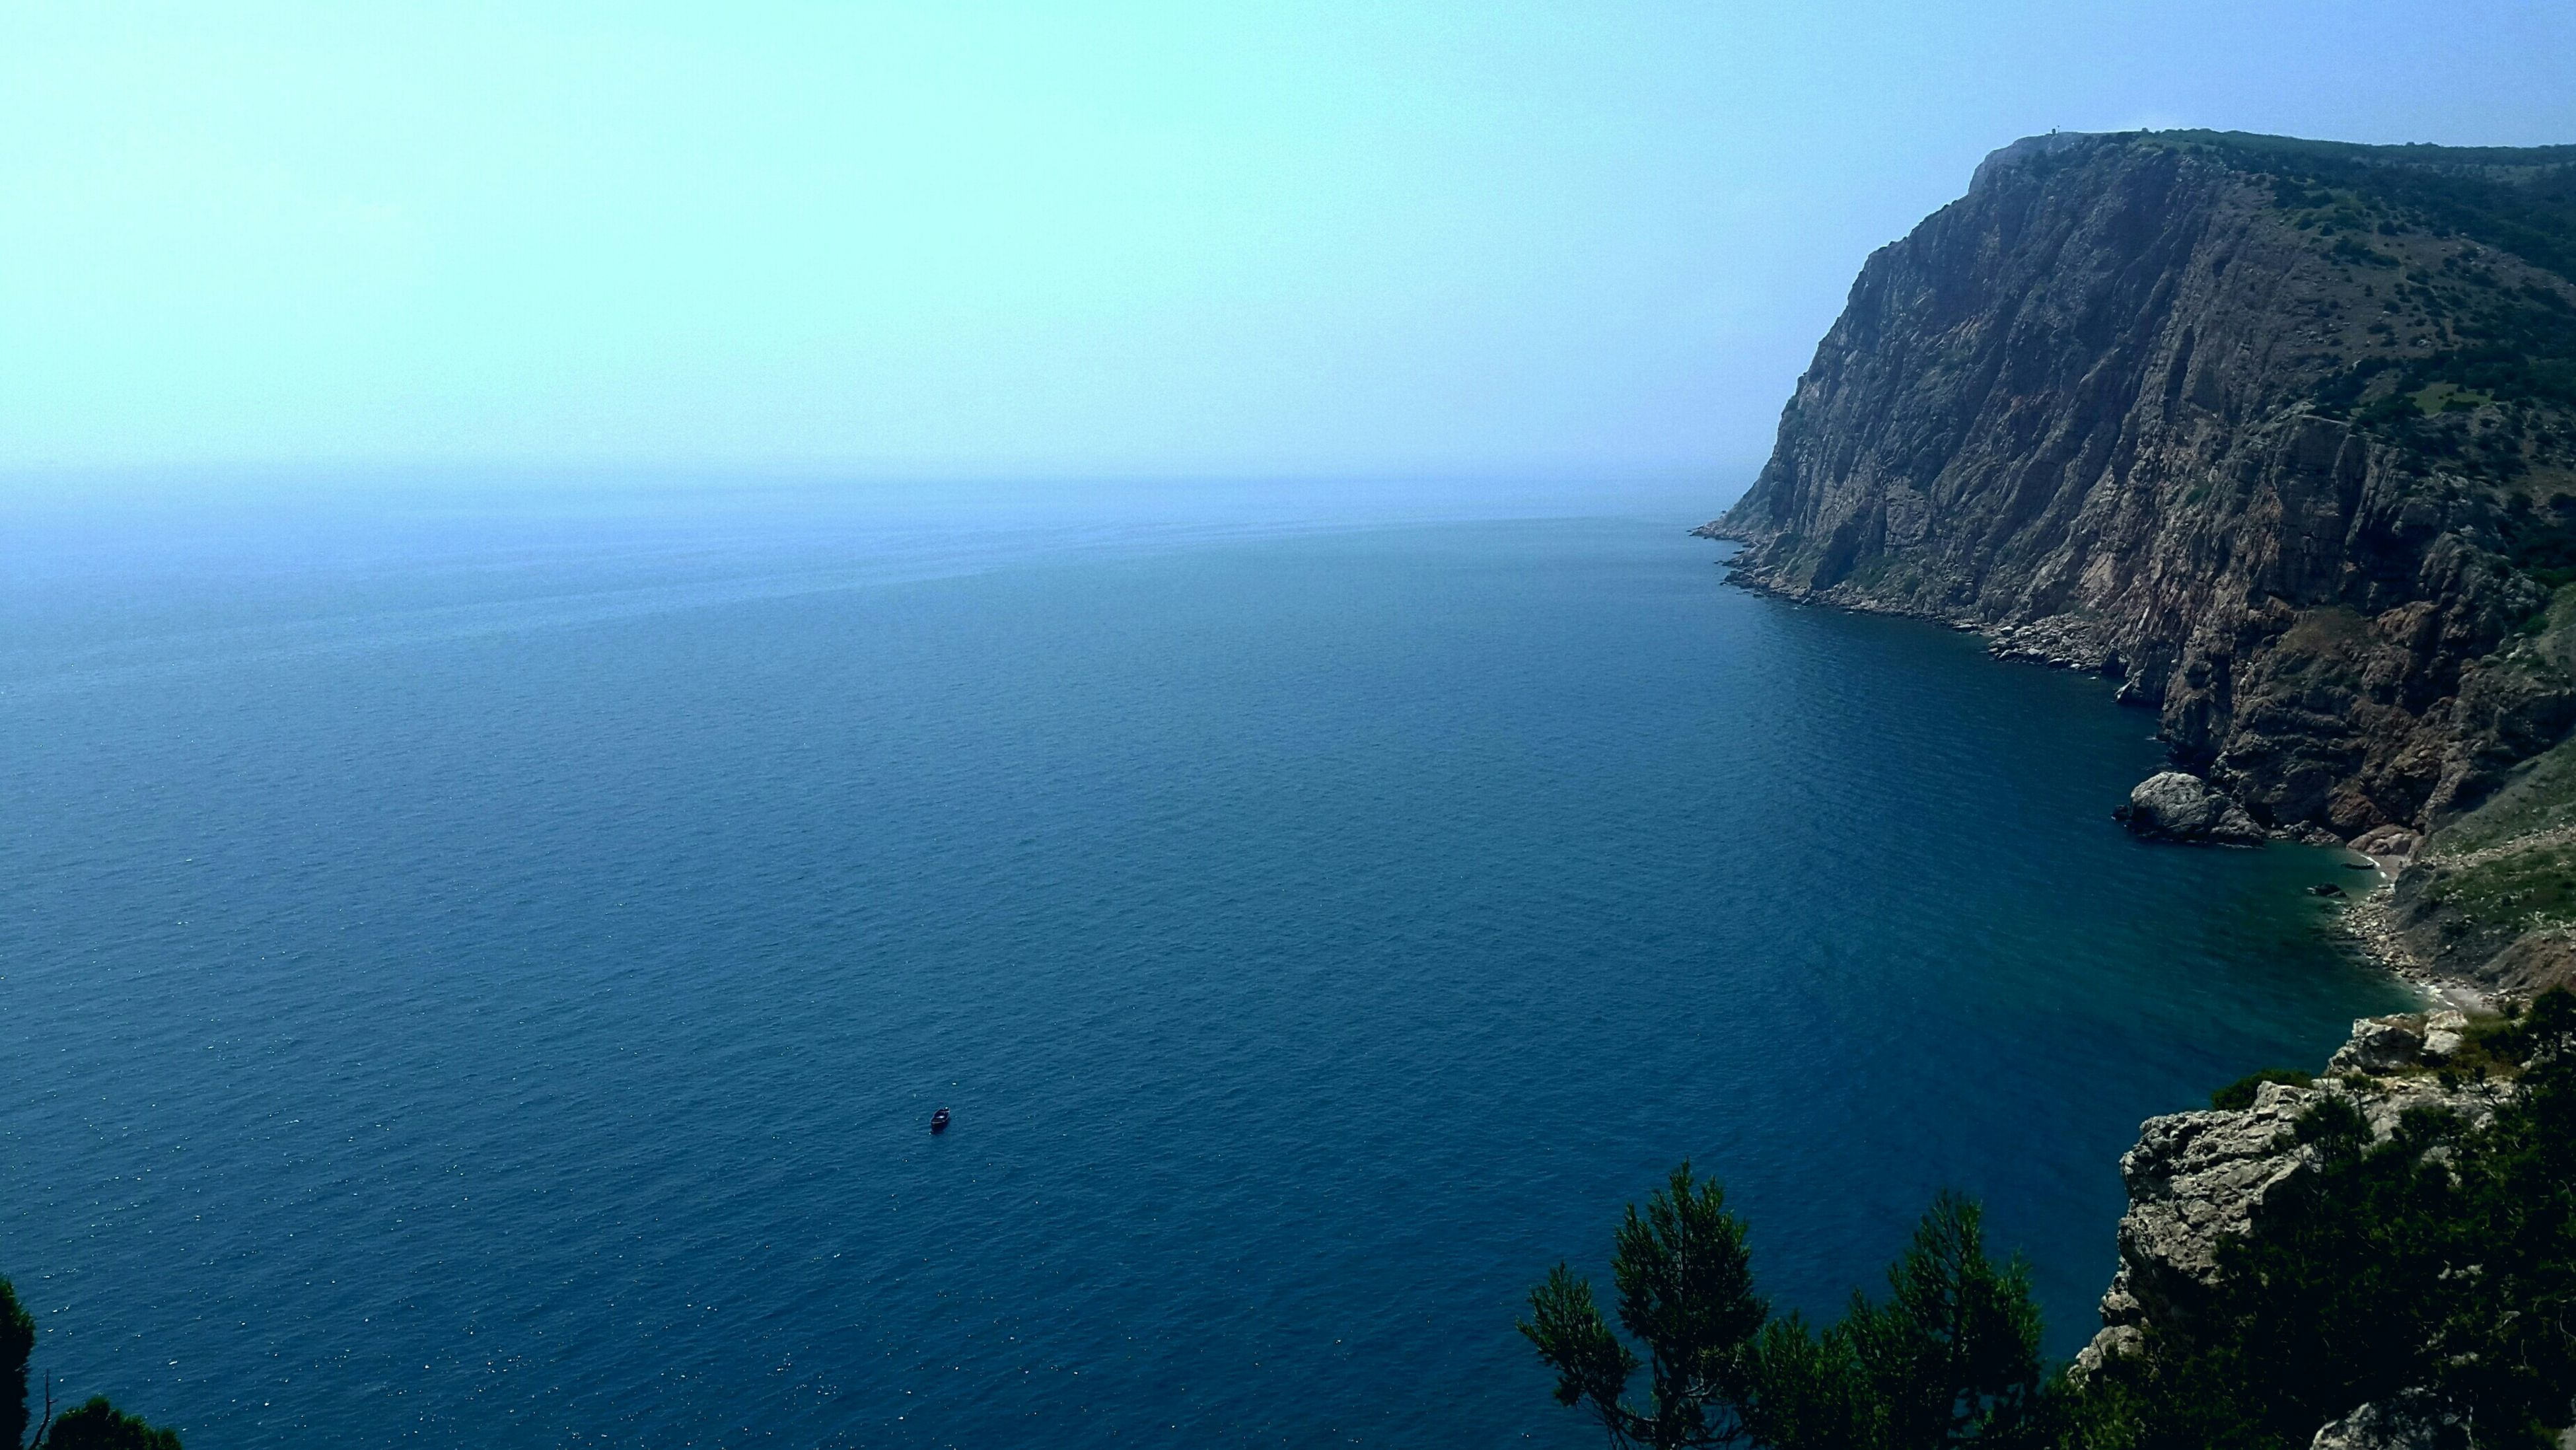 tranquil scene, scenics, tranquility, water, beauty in nature, sea, mountain, clear sky, nature, blue, idyllic, copy space, horizon over water, high angle view, mountain range, tree, non-urban scene, coastline, cliff, sky